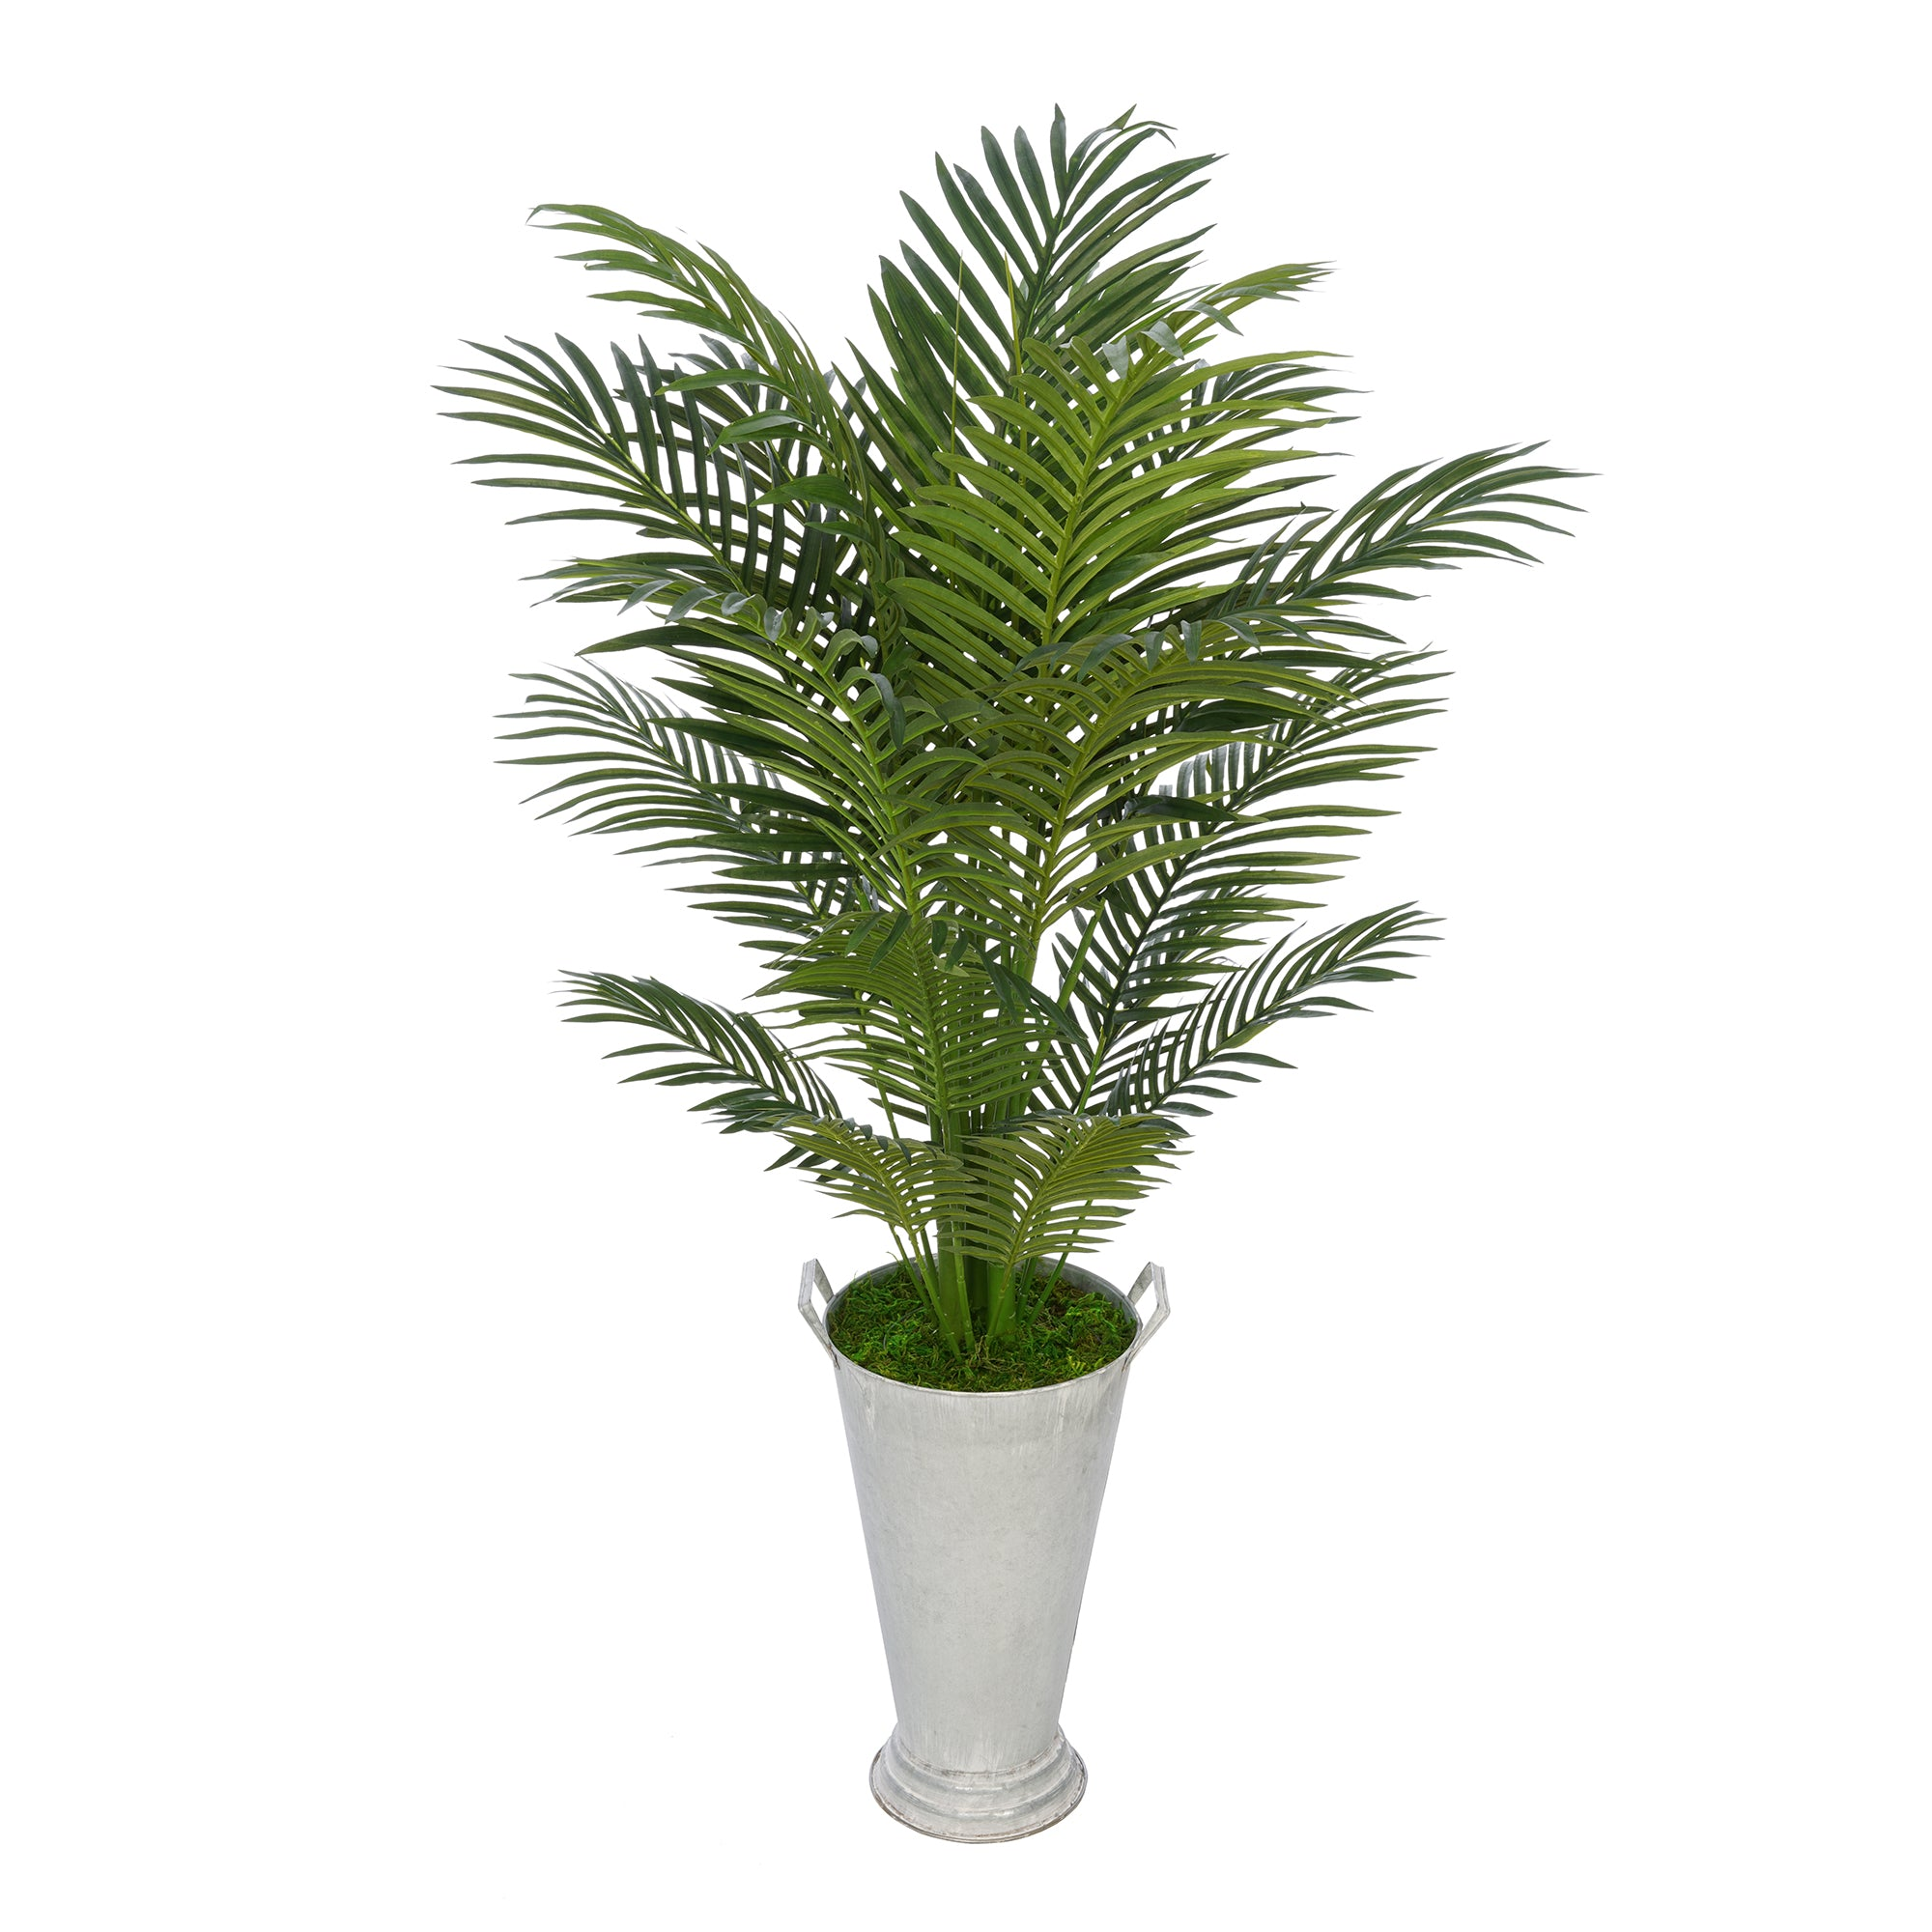 4-1/2 foot Areca Palm in Galvanized Southern Farm Bucket House of Silk Flowers®